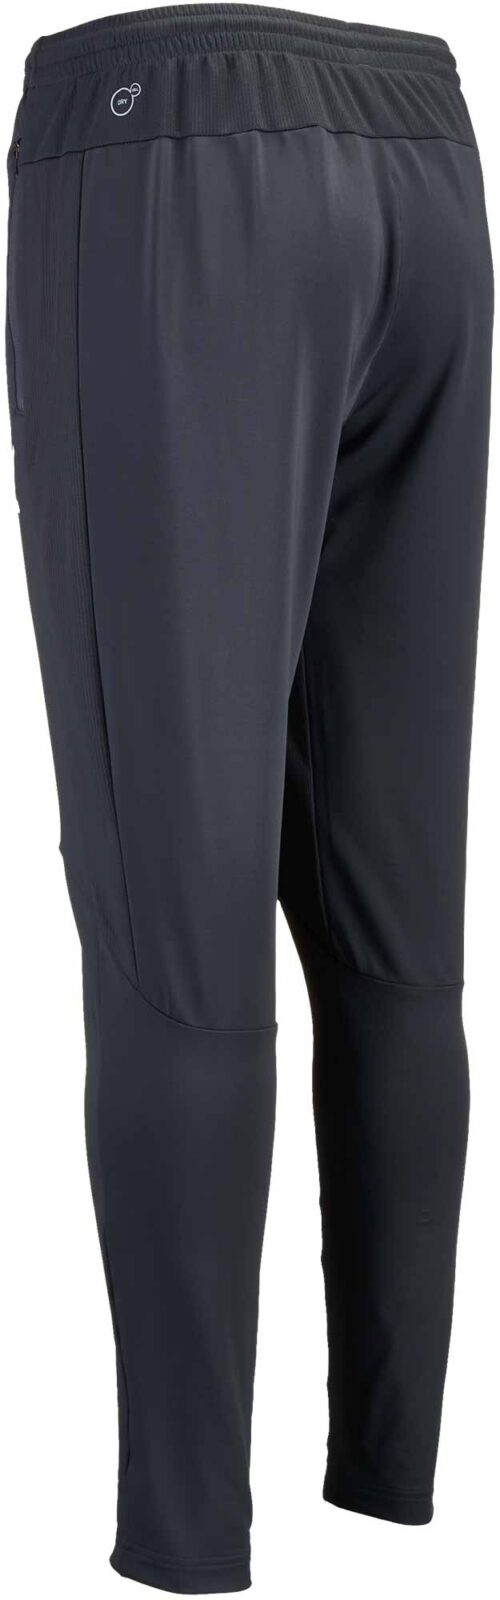 Puma Arsenal Training Pants – Dark Shadow